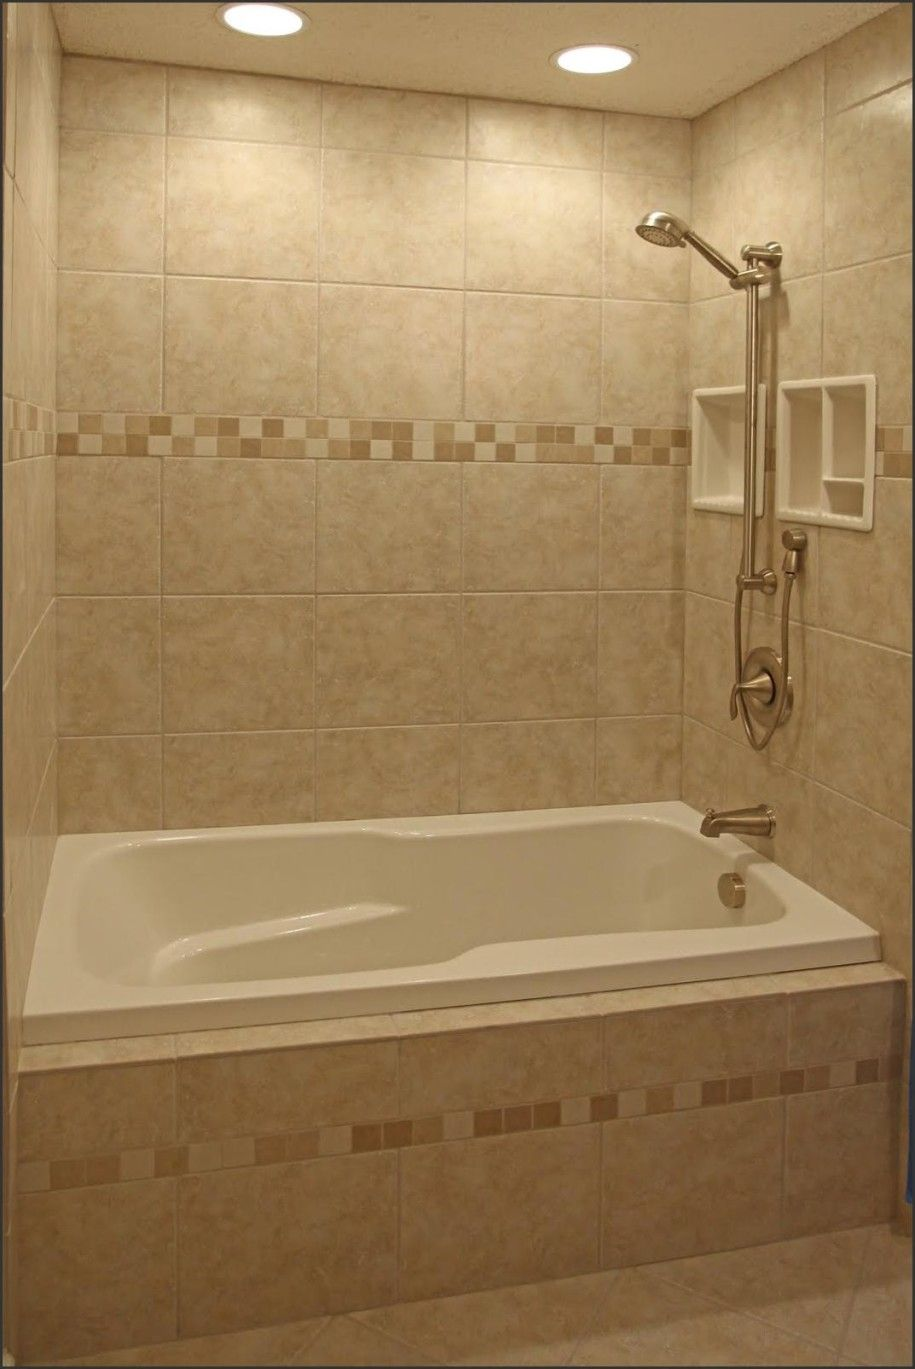 Modern Shower Tub Combo Ideas Small Bathroom With Alcove Bathtub And Limestone Wall Use Jk To U For Inspiration